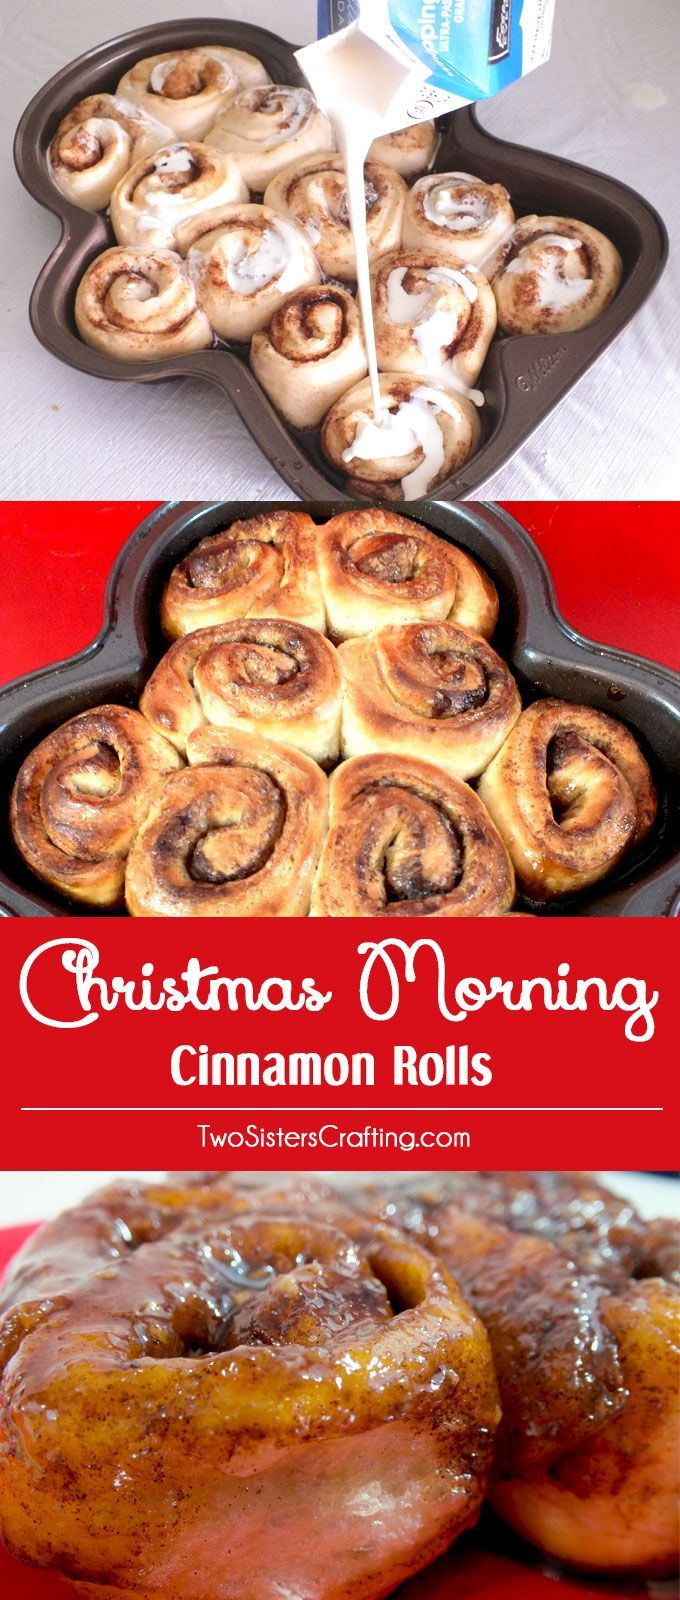 These Christmas Morning Cinnamon Rolls are so simple to make and taste amazing. They have been a Holiday breakfast tradition for our family for as long as we can remember. Give this Christmas Breakfast idea a try this year, you won't be sorry! Pin these yummy Cinnamon Rolls for later and follow us for more Christmas Food ideas.